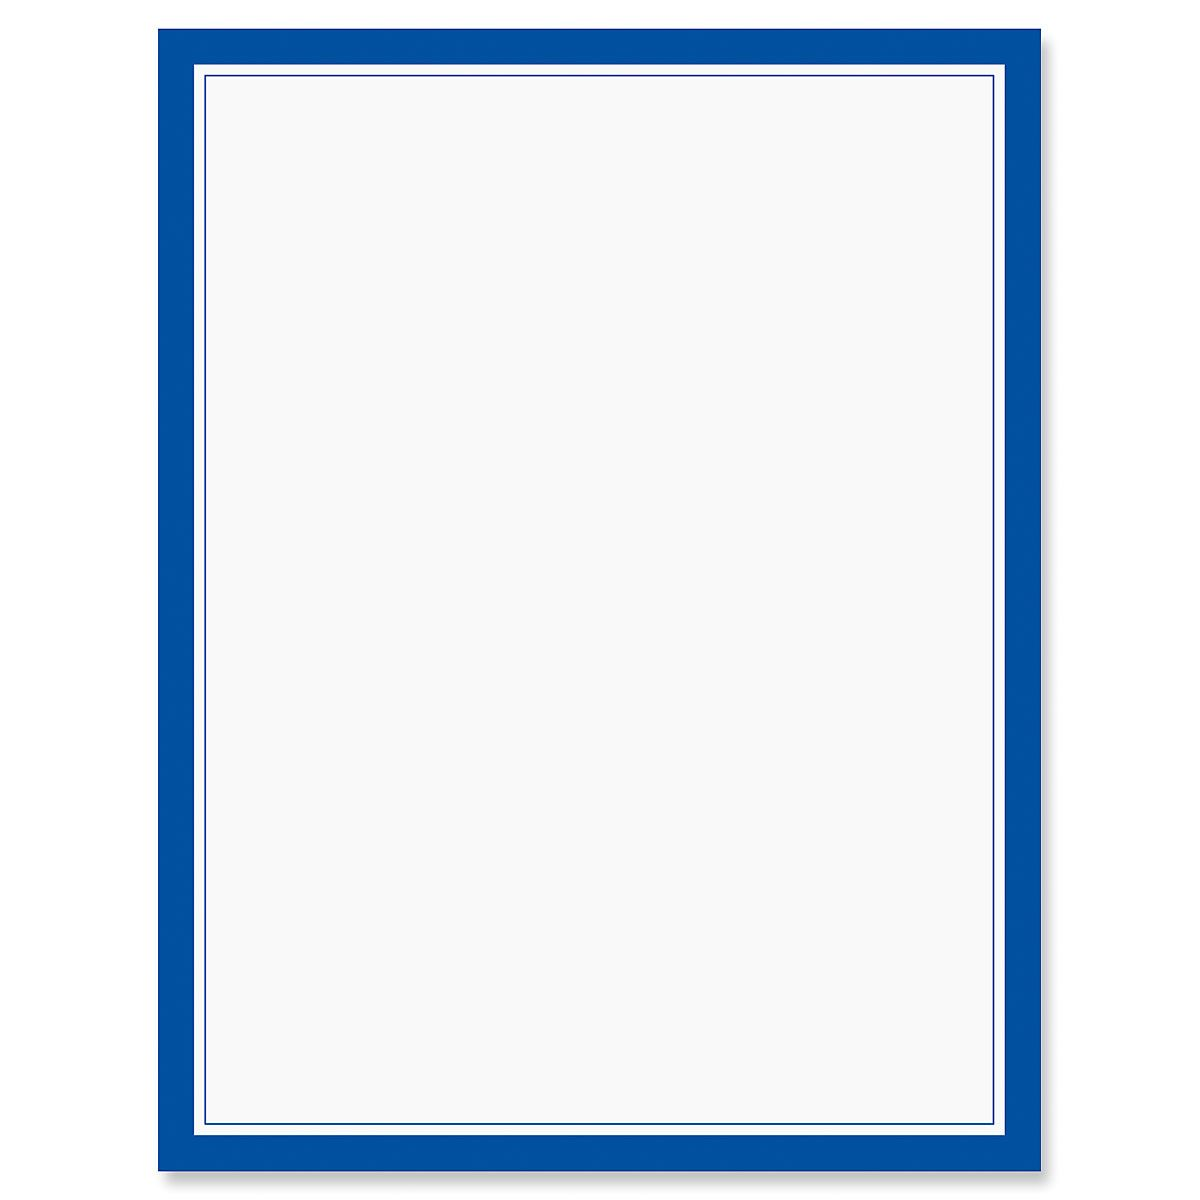 Blue Frame 4th of July Letter Papers